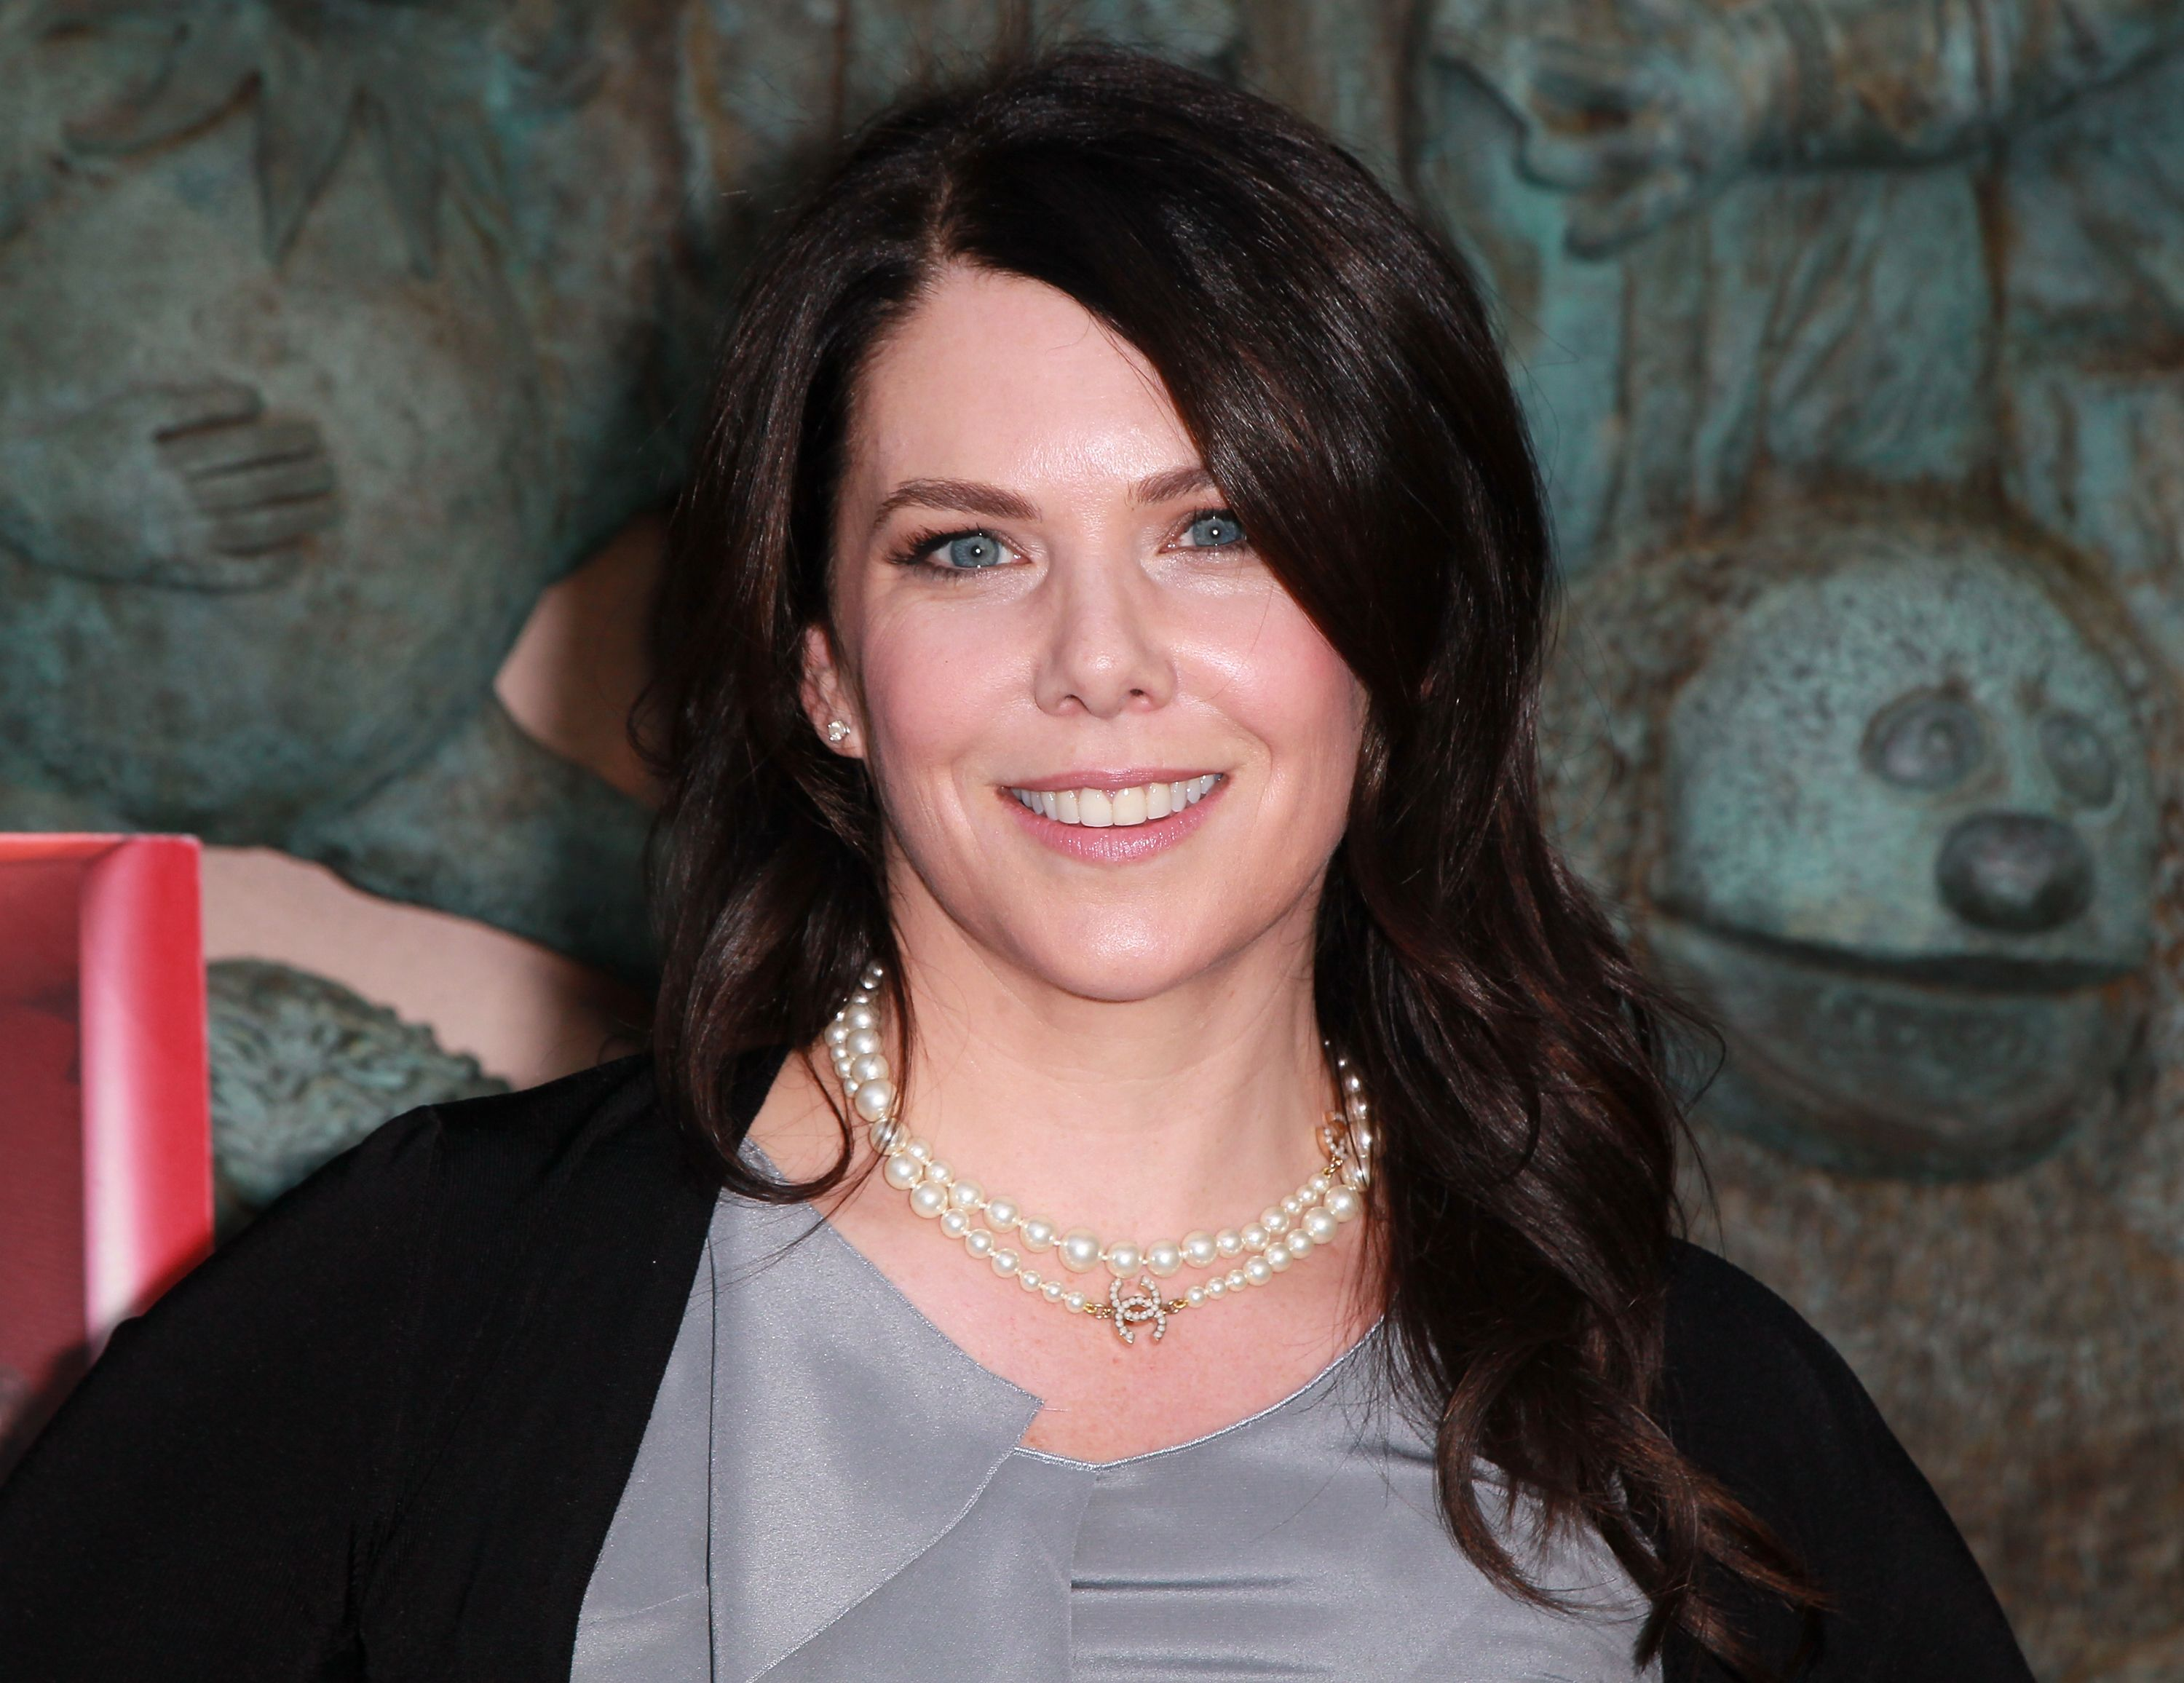 """Lauren Graham at the screening of """"Parenthood"""" in 2011 in North Hollywood, California   Source: Getty Images"""